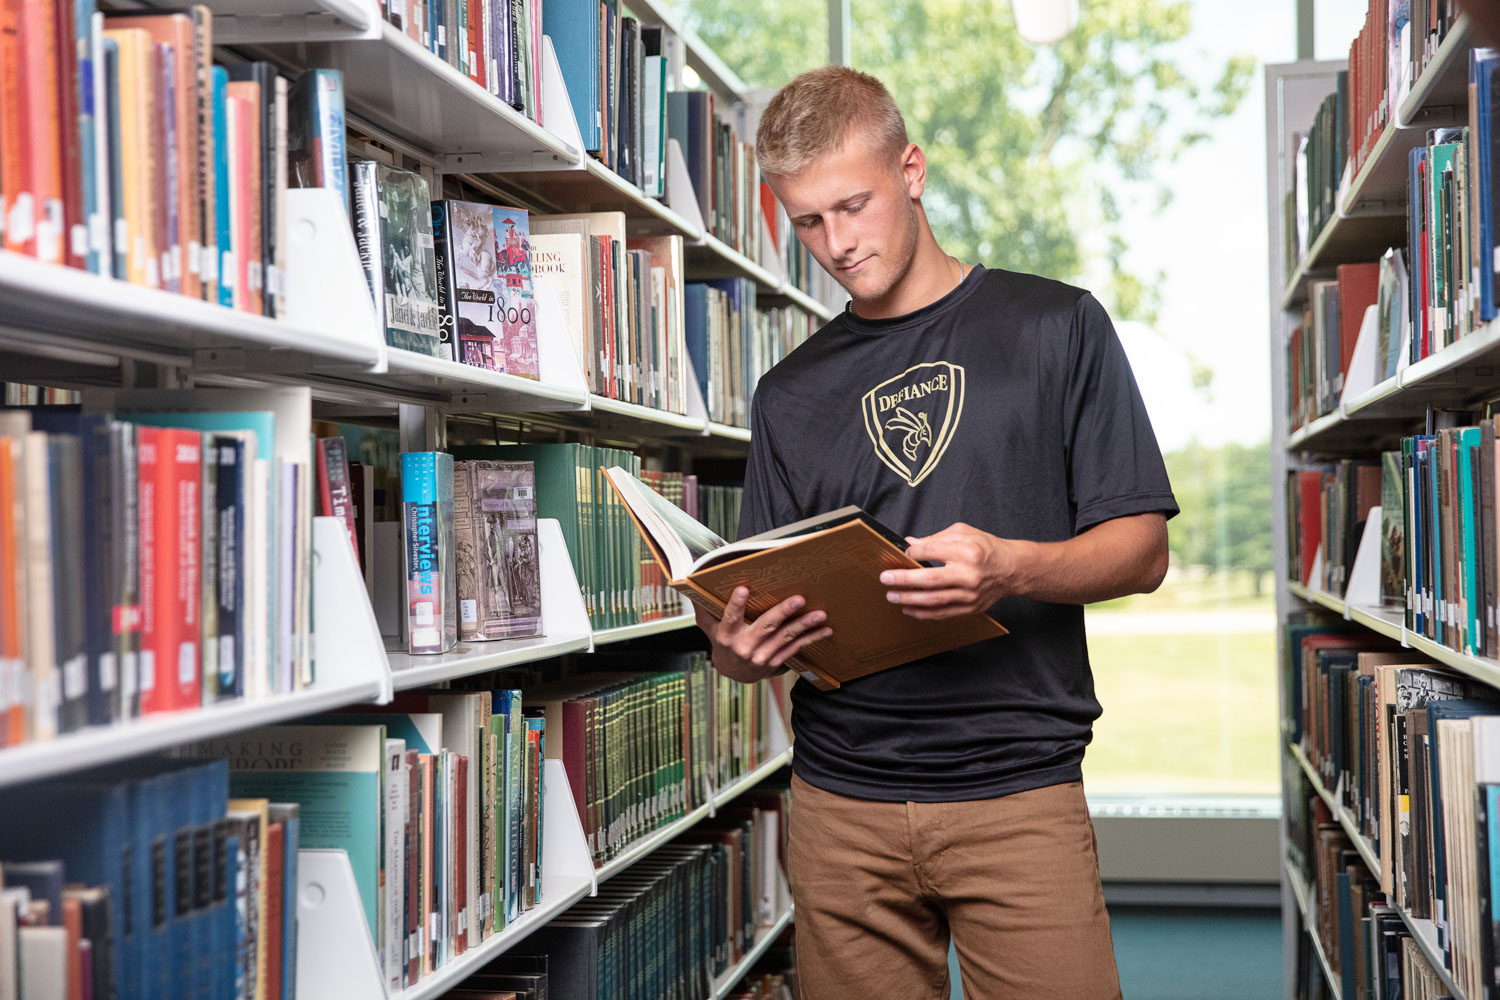 McMaster Scholar in Library